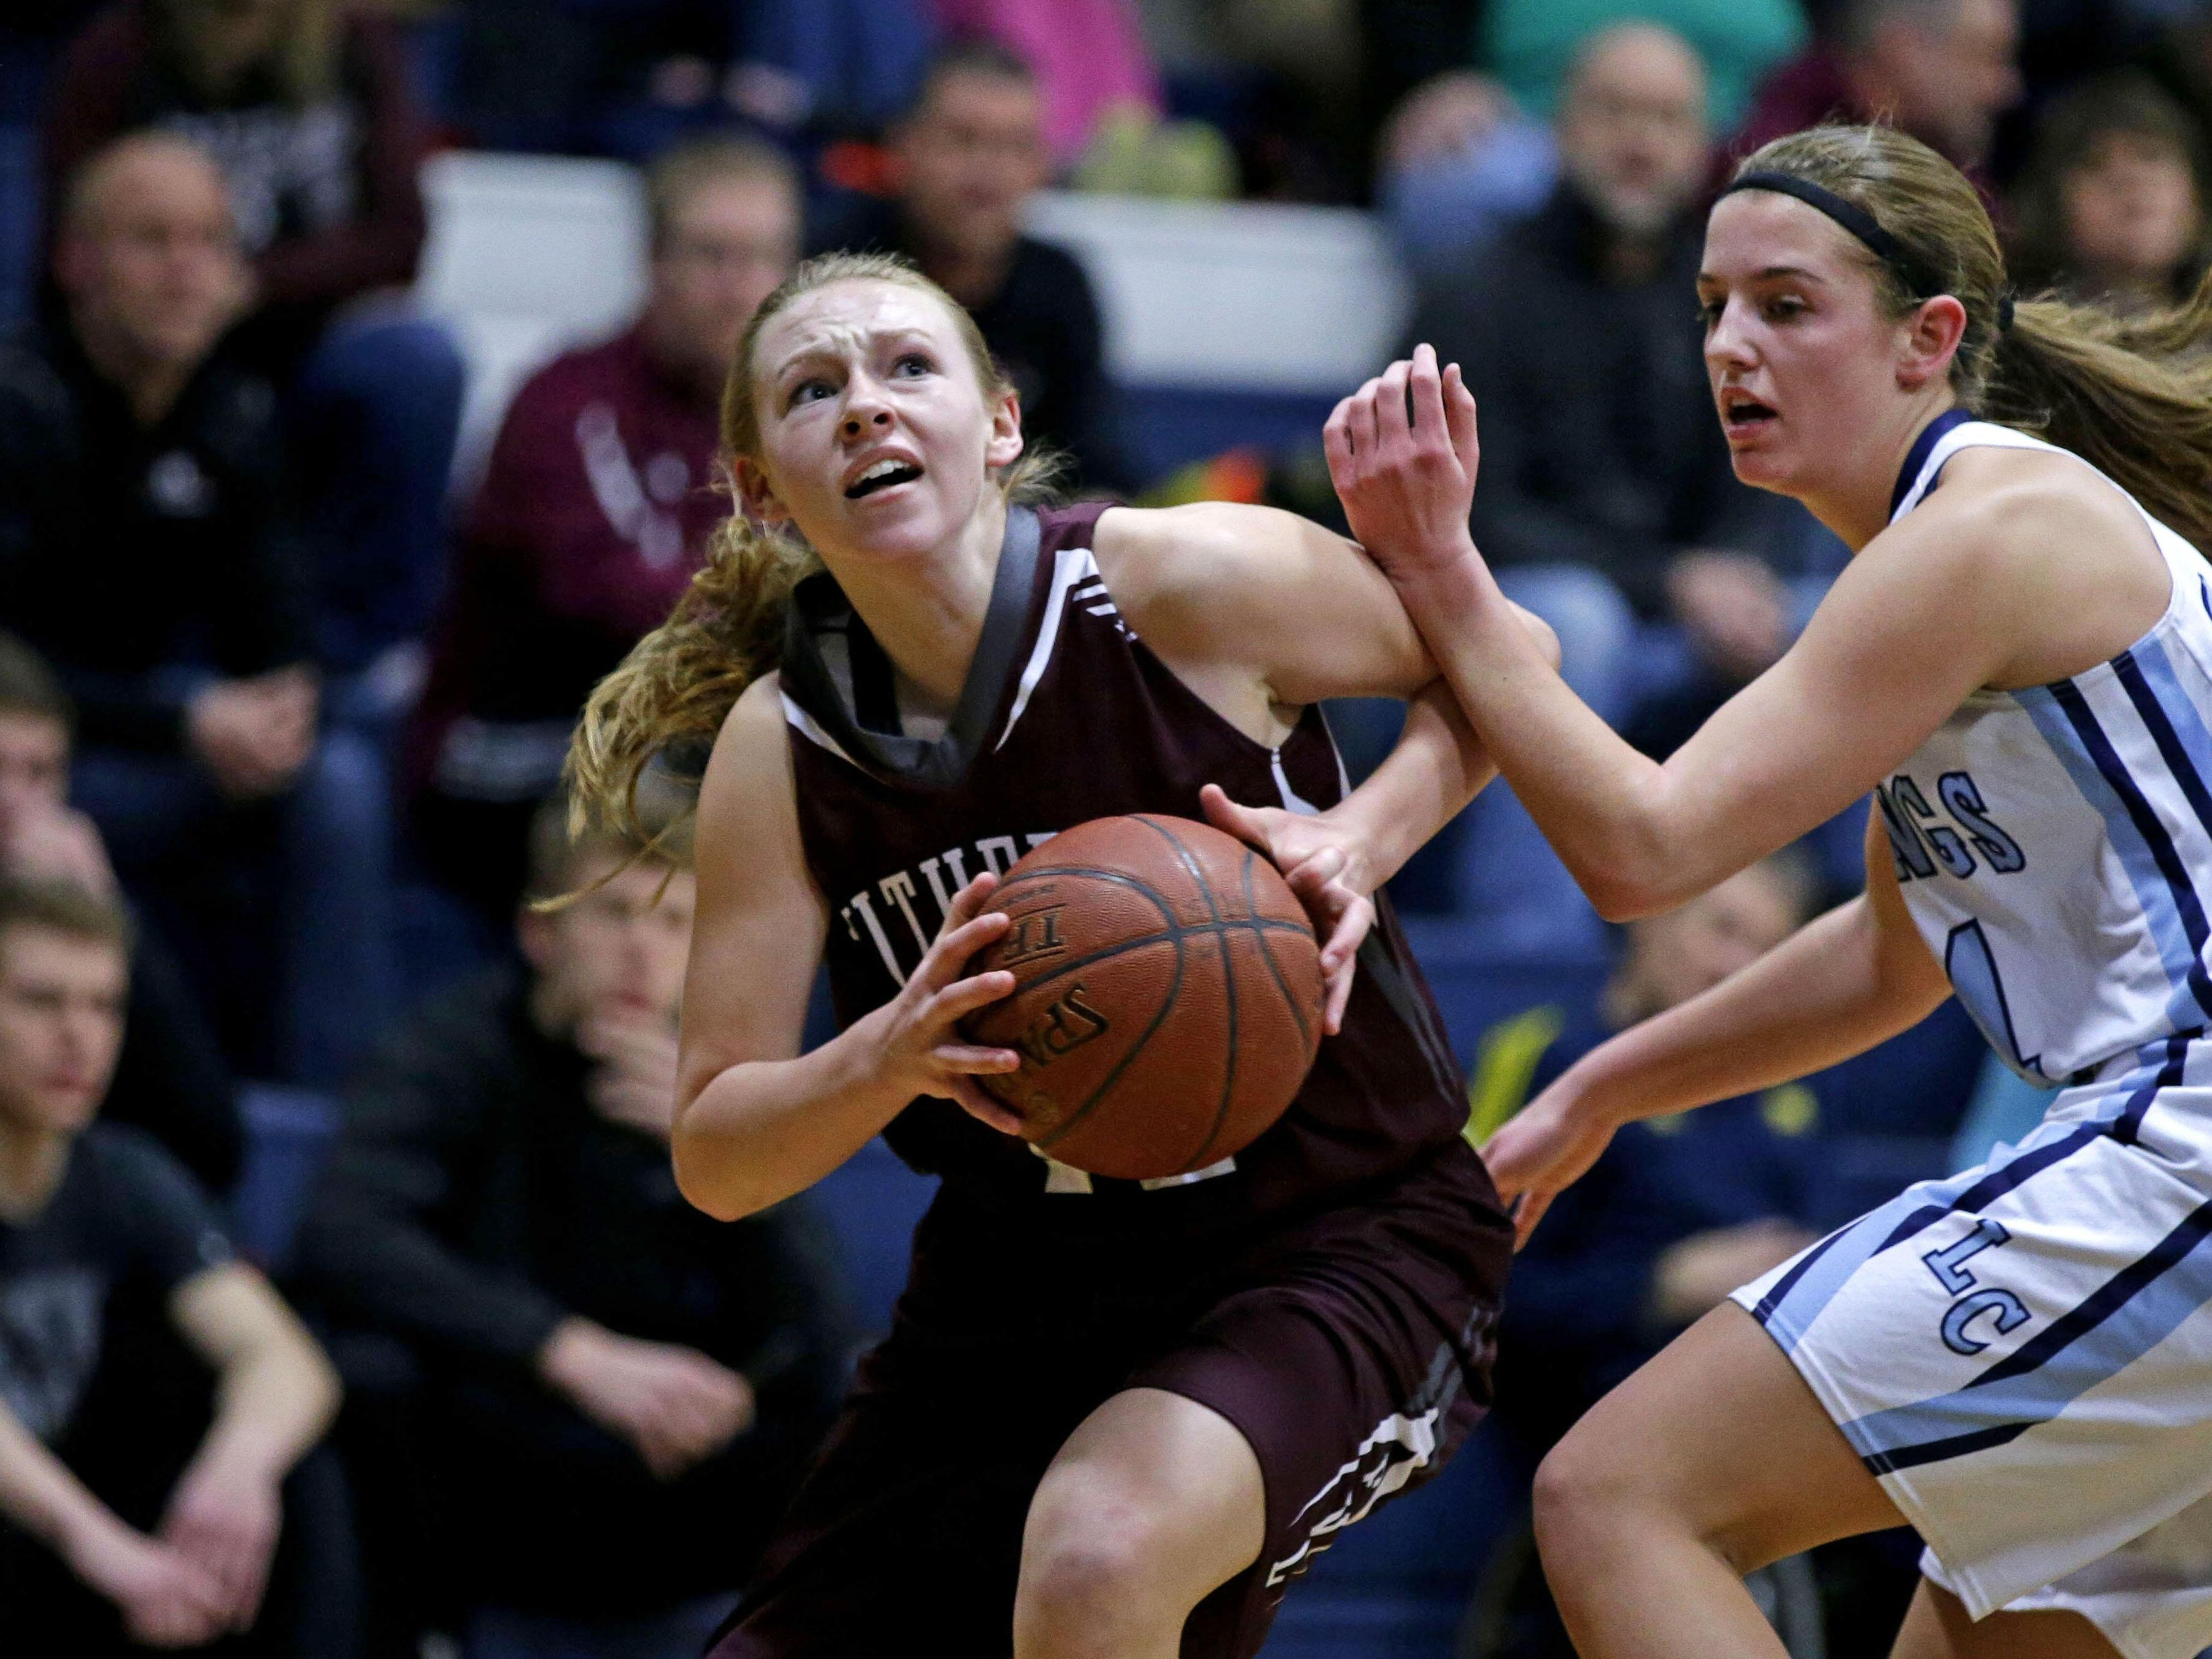 Jenna Bruss, left, of Fox Valley Lutheran drives against Olivia Hermsen of Little Chute during a WIAA Division 3 regional semifinal Friday in Little Chute.